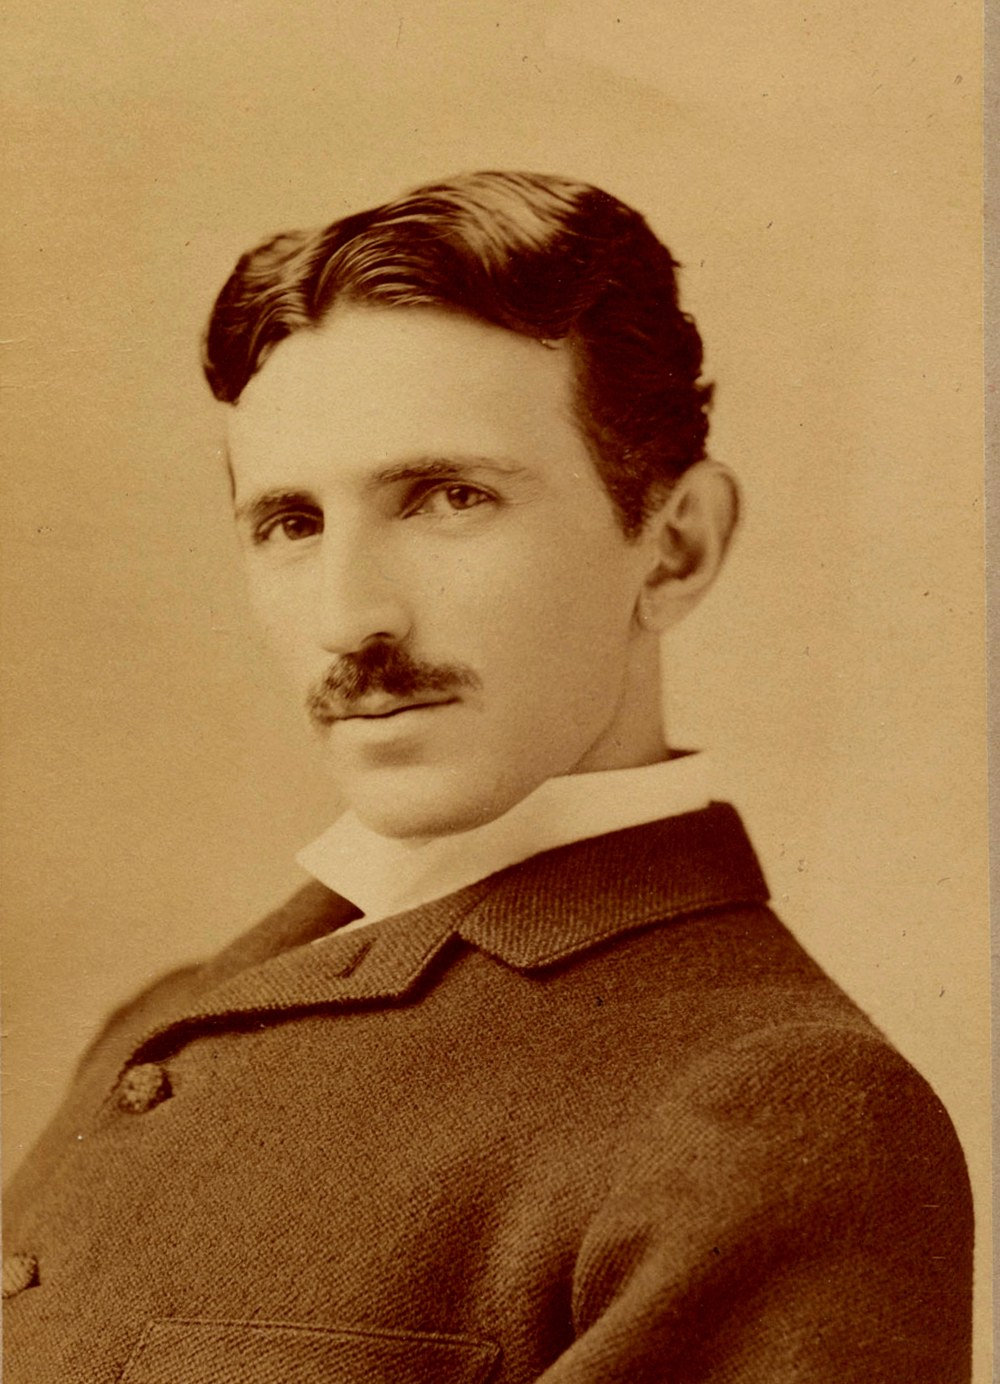 nikola_tesla_by_sarony_-_seifer_archives